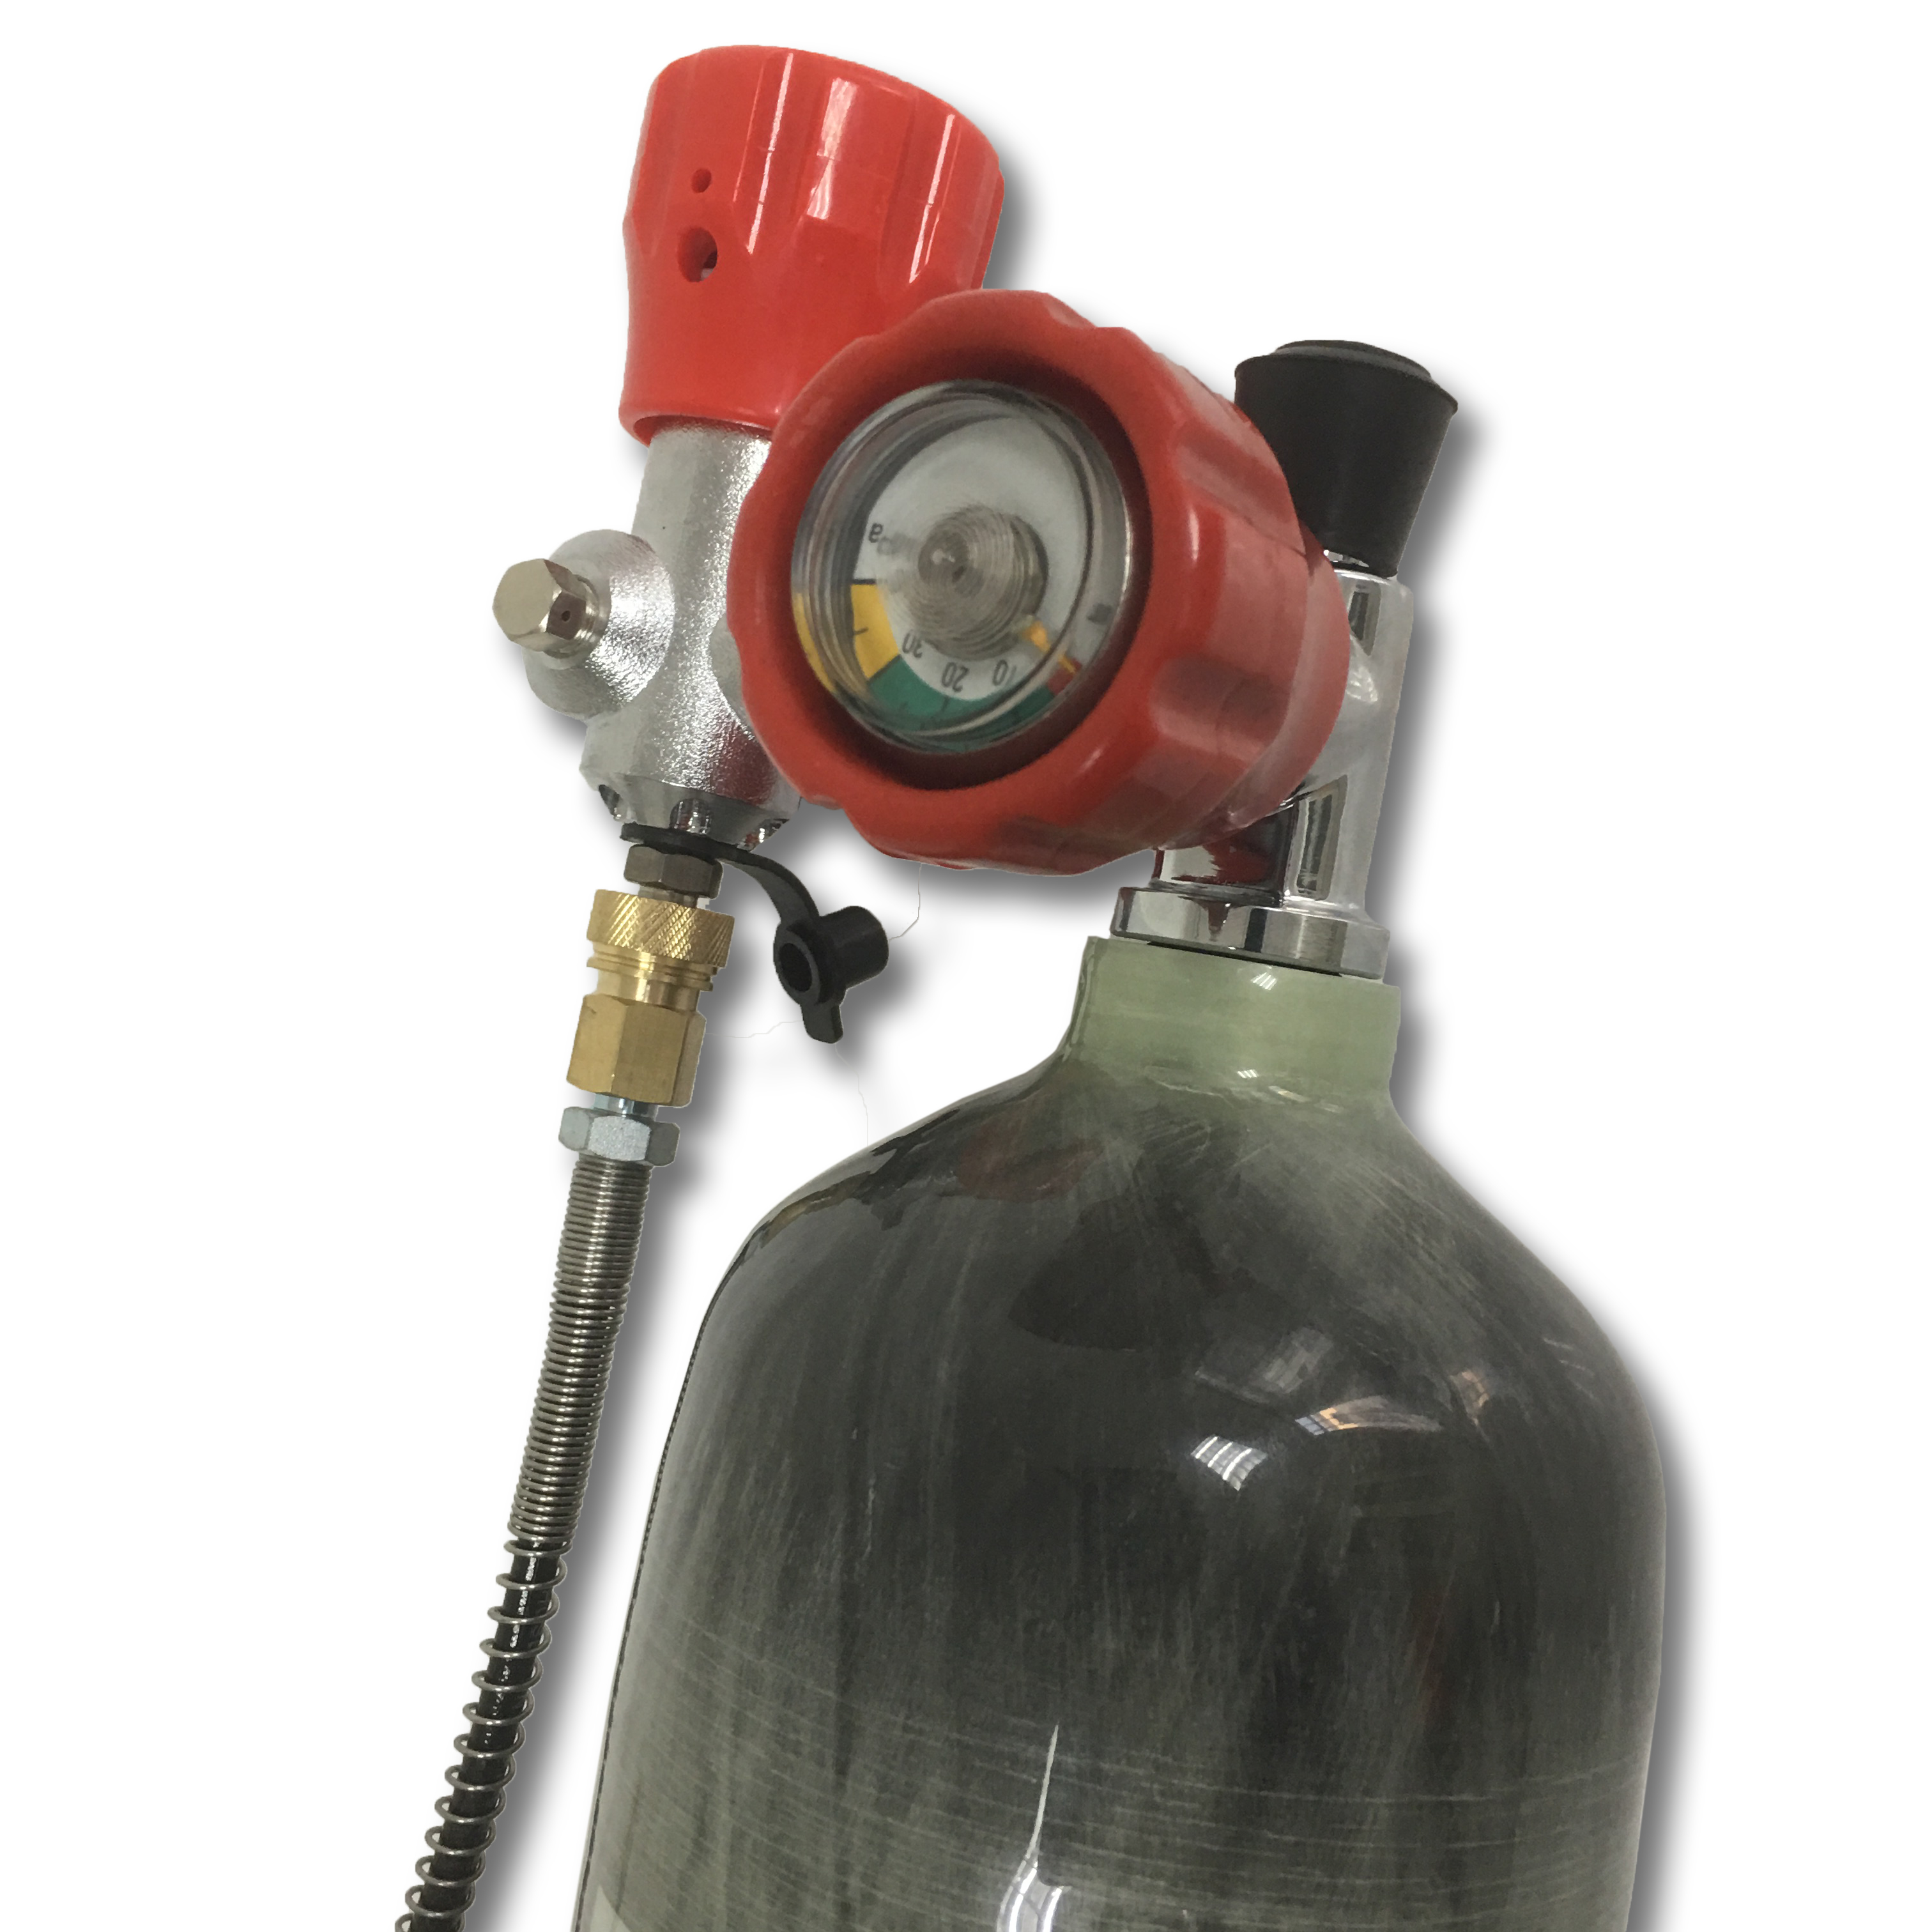 AC103101 Air Tank/Carbon Tank Airforce Condor 4500psi 3L CE Gas Cylinder Pcp Bottle Valve Fill Station Drop Shipping ACECARE